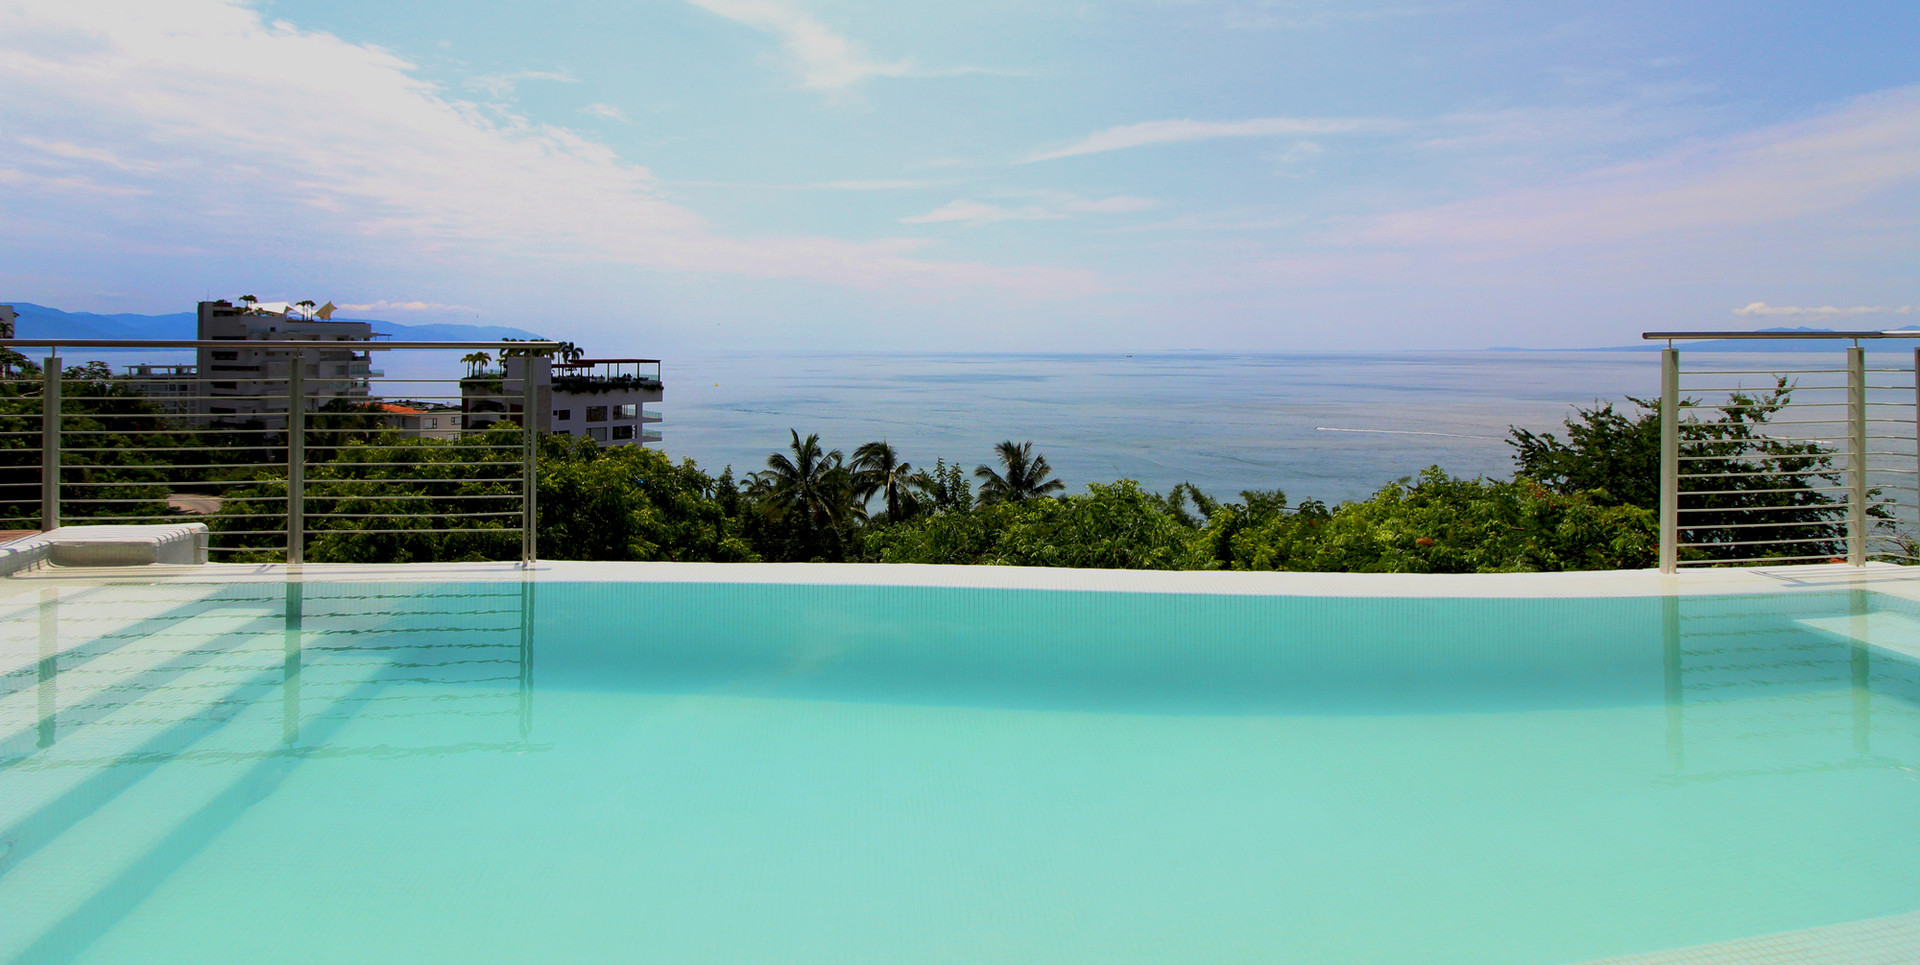 POOL VIEW TO THE OCEAN.jpg